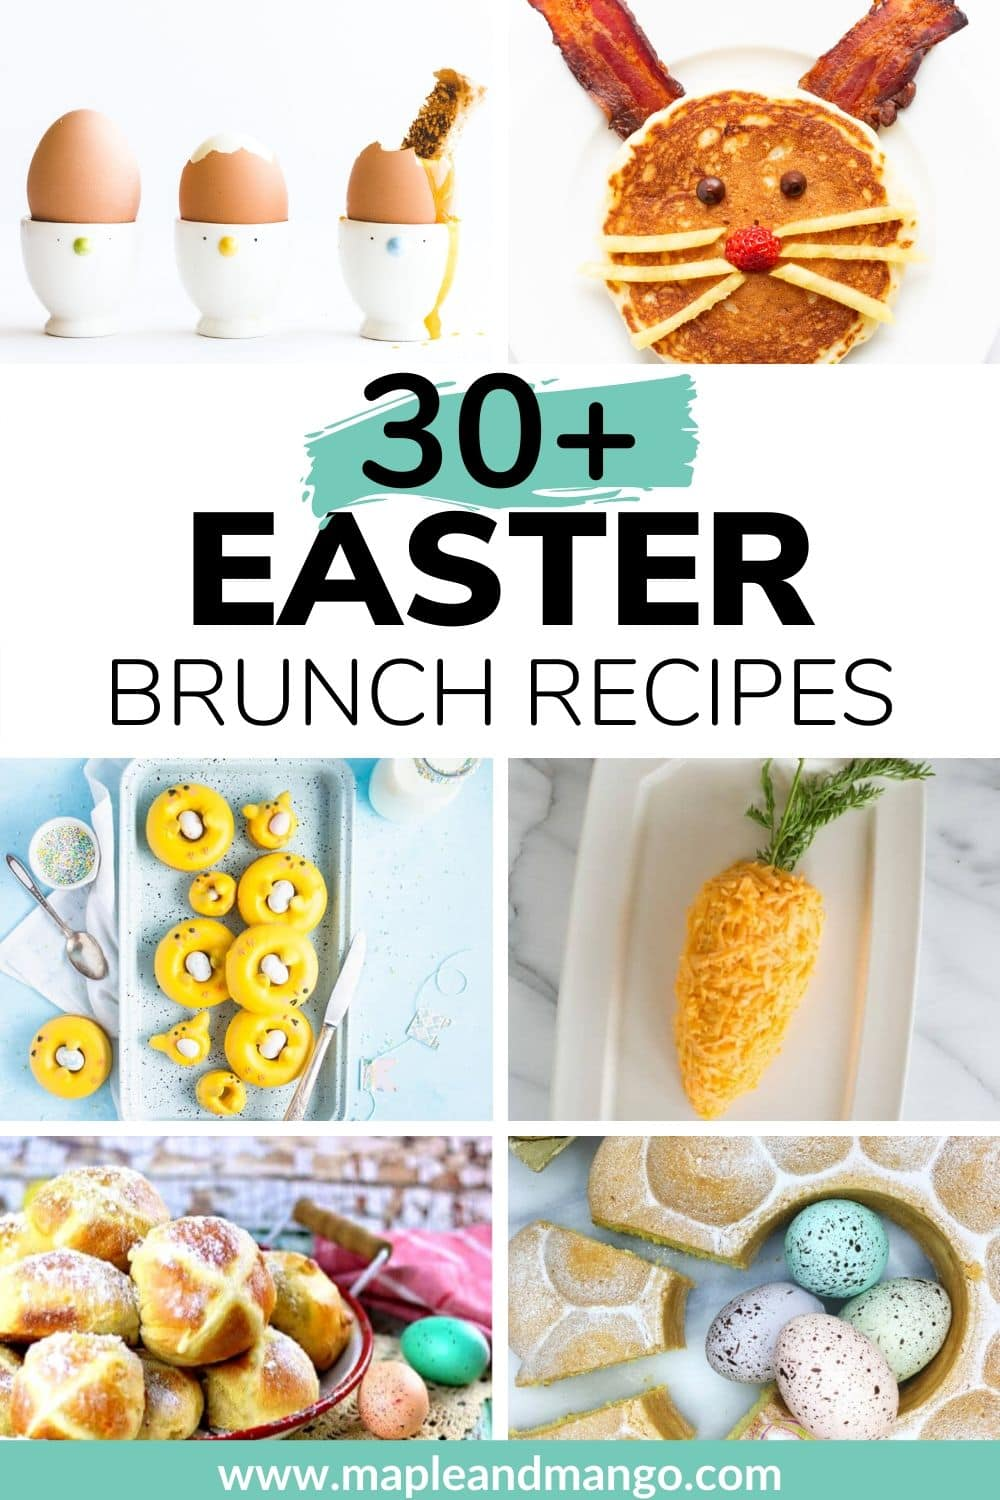 Pinterest image for Easter brunch recipe ideas.